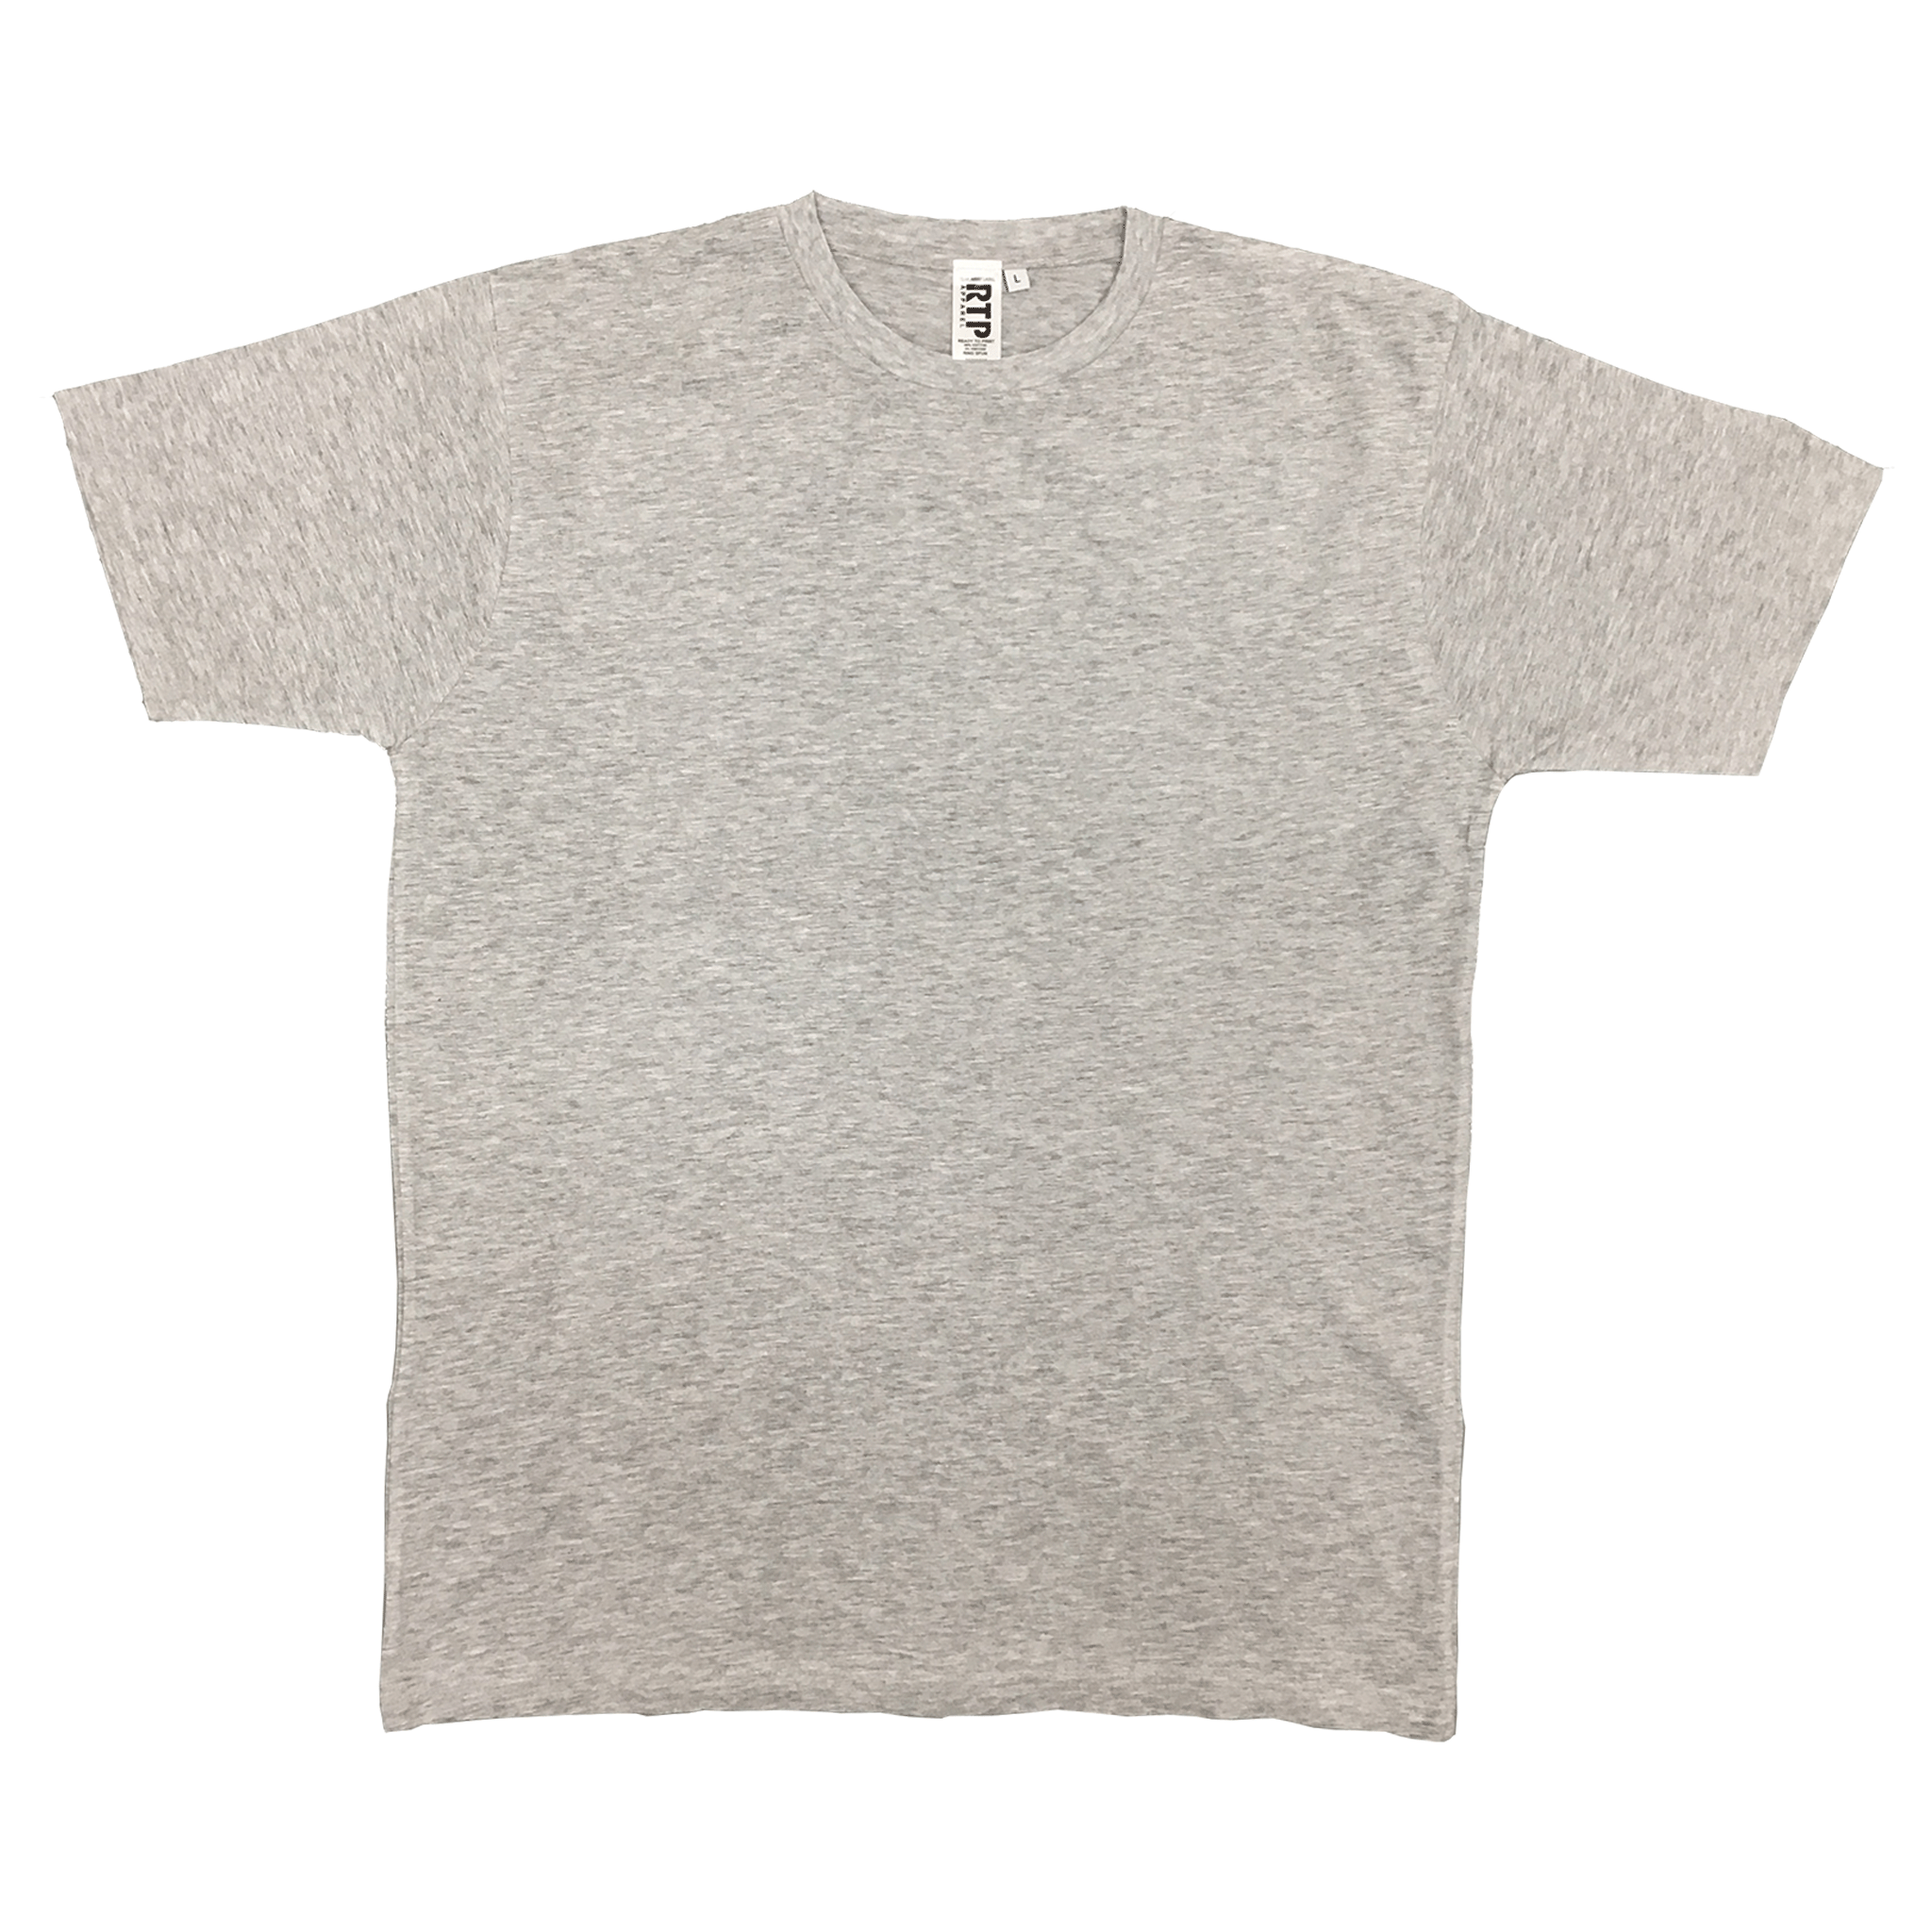 Athletic Grey - 1600 - DTG Ready To Print Crew Neck T-Shirt